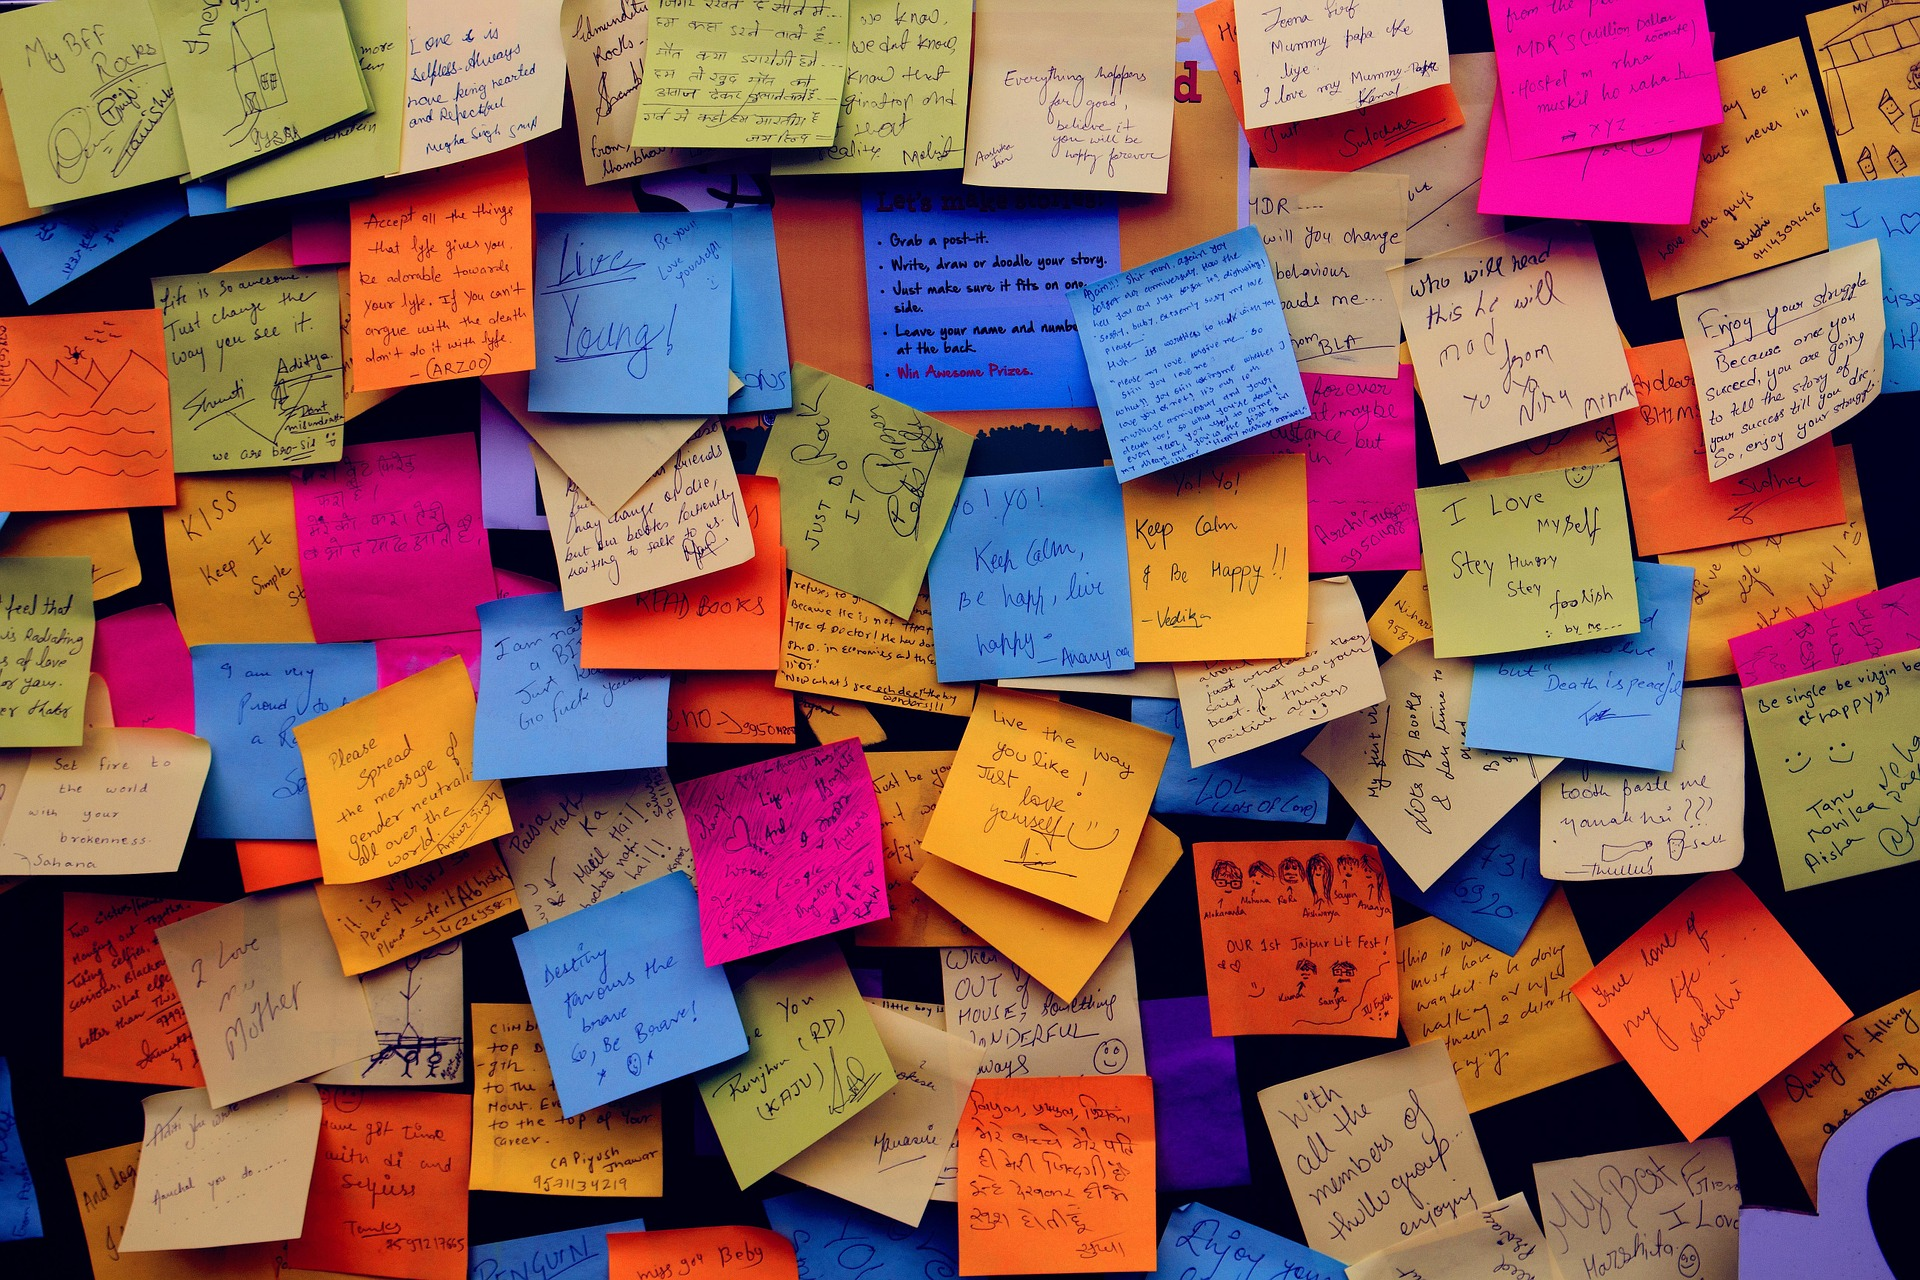 Wall of colorful sticky notes with different people messages - used for link picture time to talk section